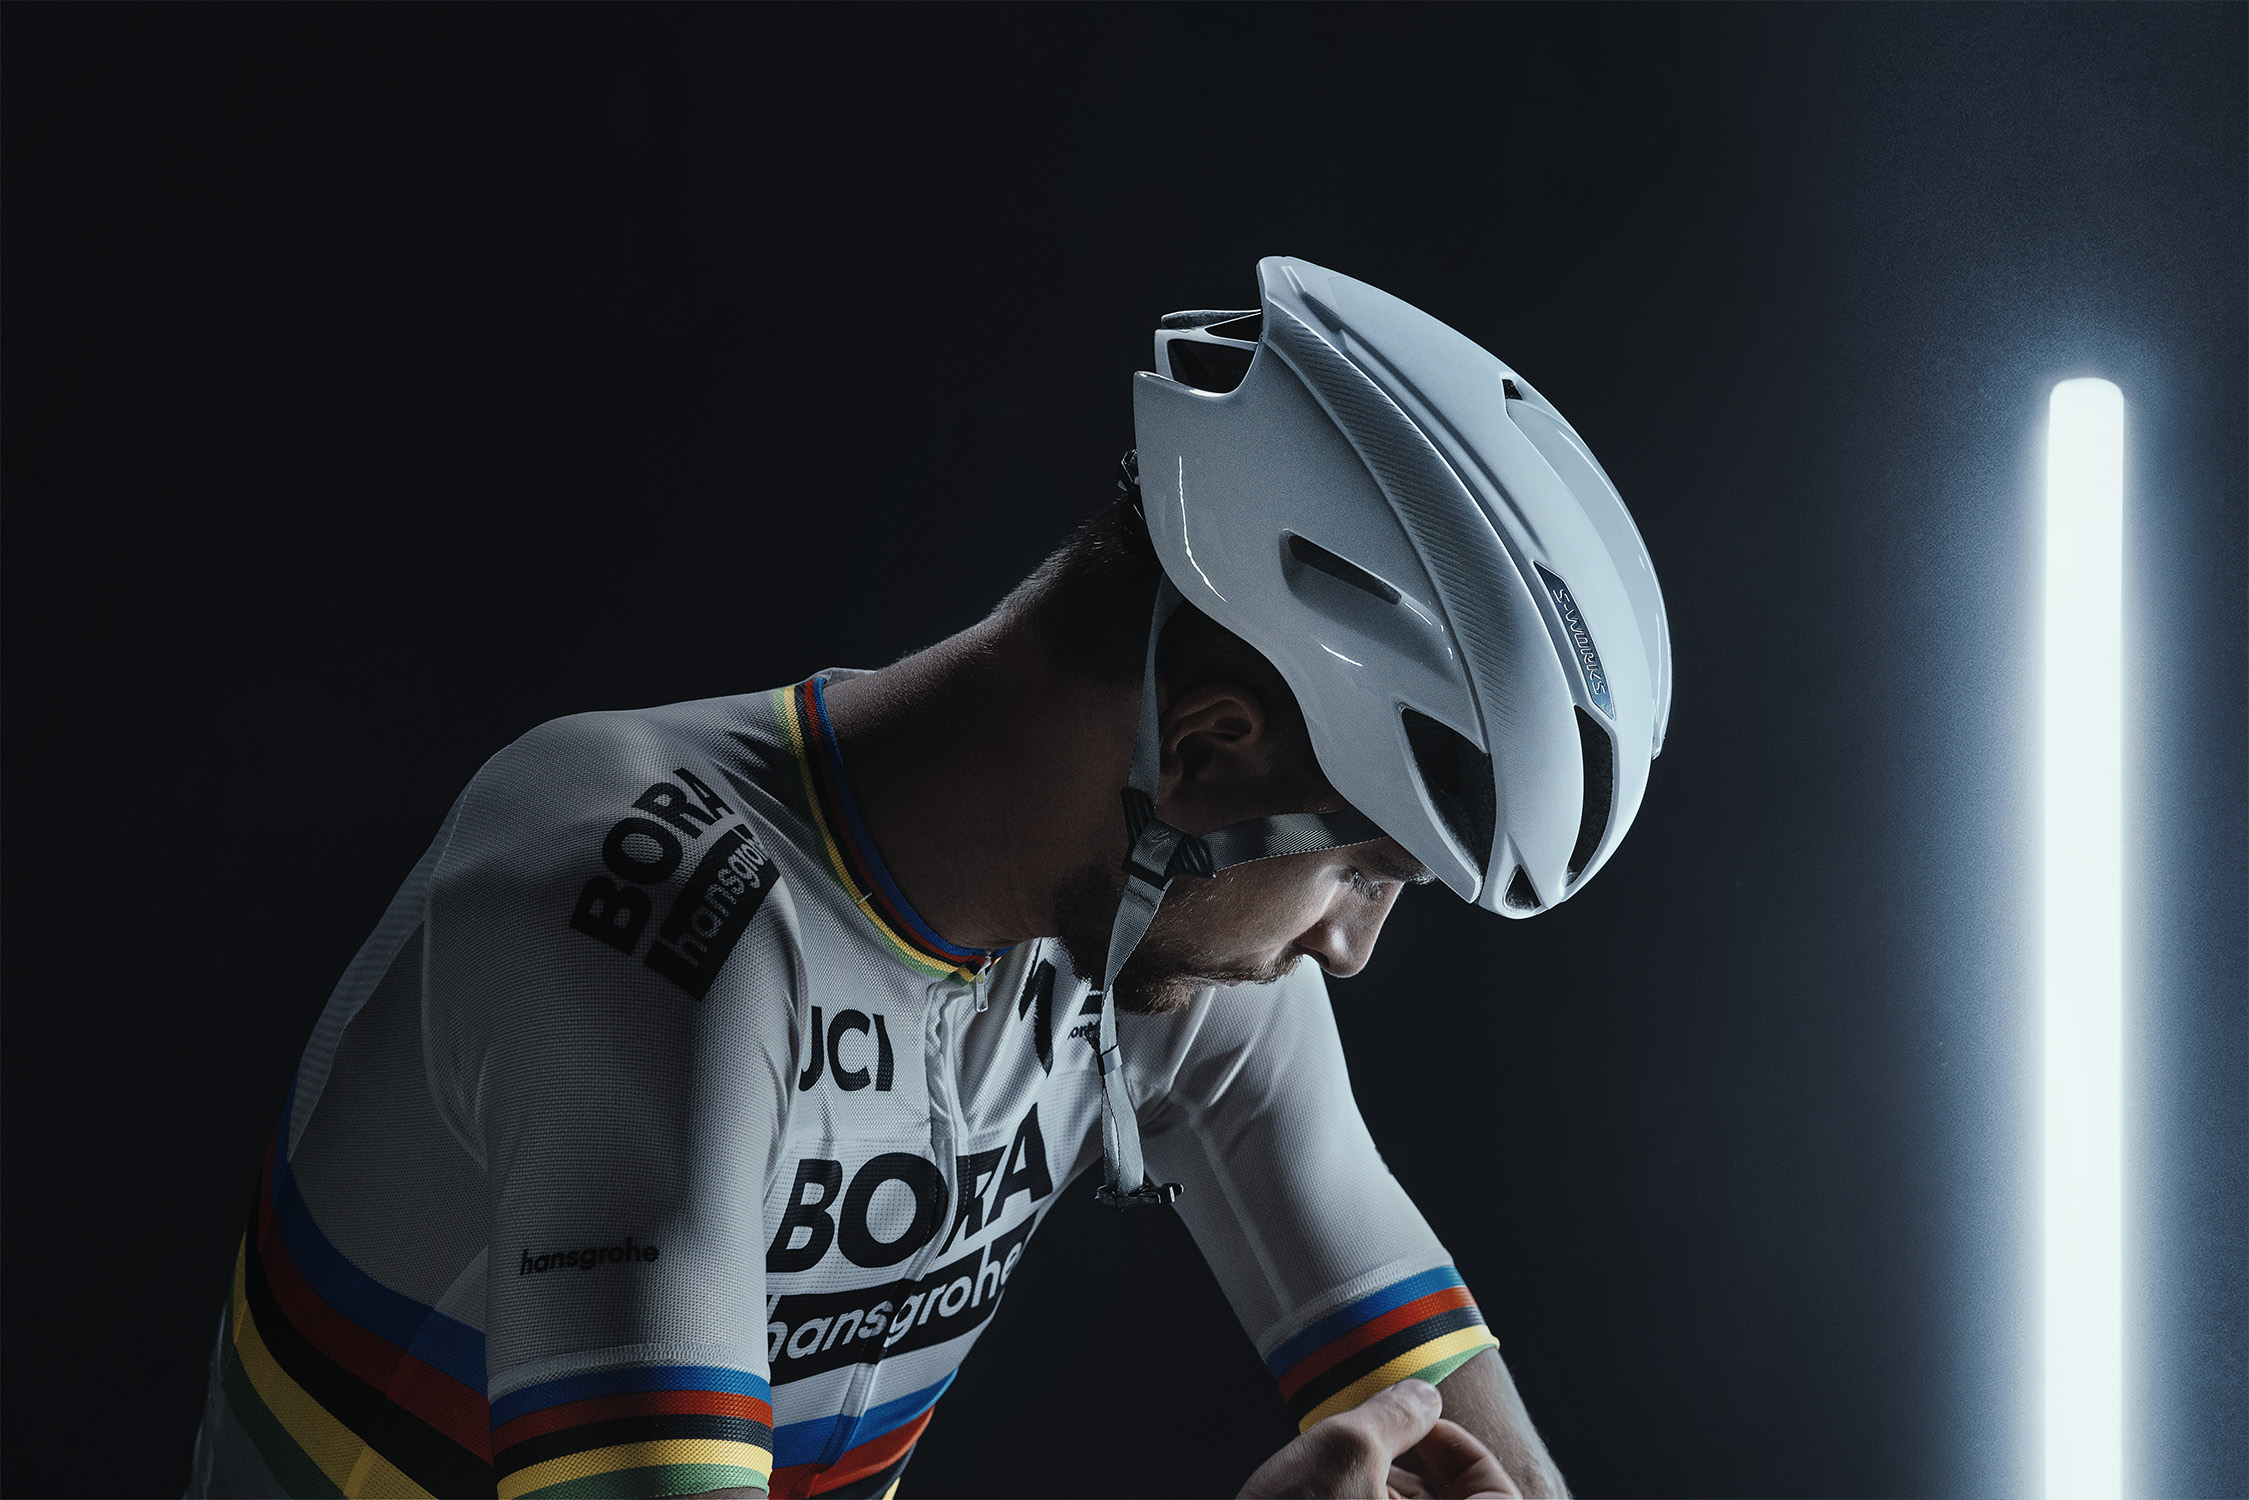 2018 - SW7 & EVADE   The two largest equipment categories, SW7 and Evade offer technology, style, and quality that is unmatched across the cycling industry. We focused on elevating the product via web, social, and retail with the 3x World champion, Peter Sagan.